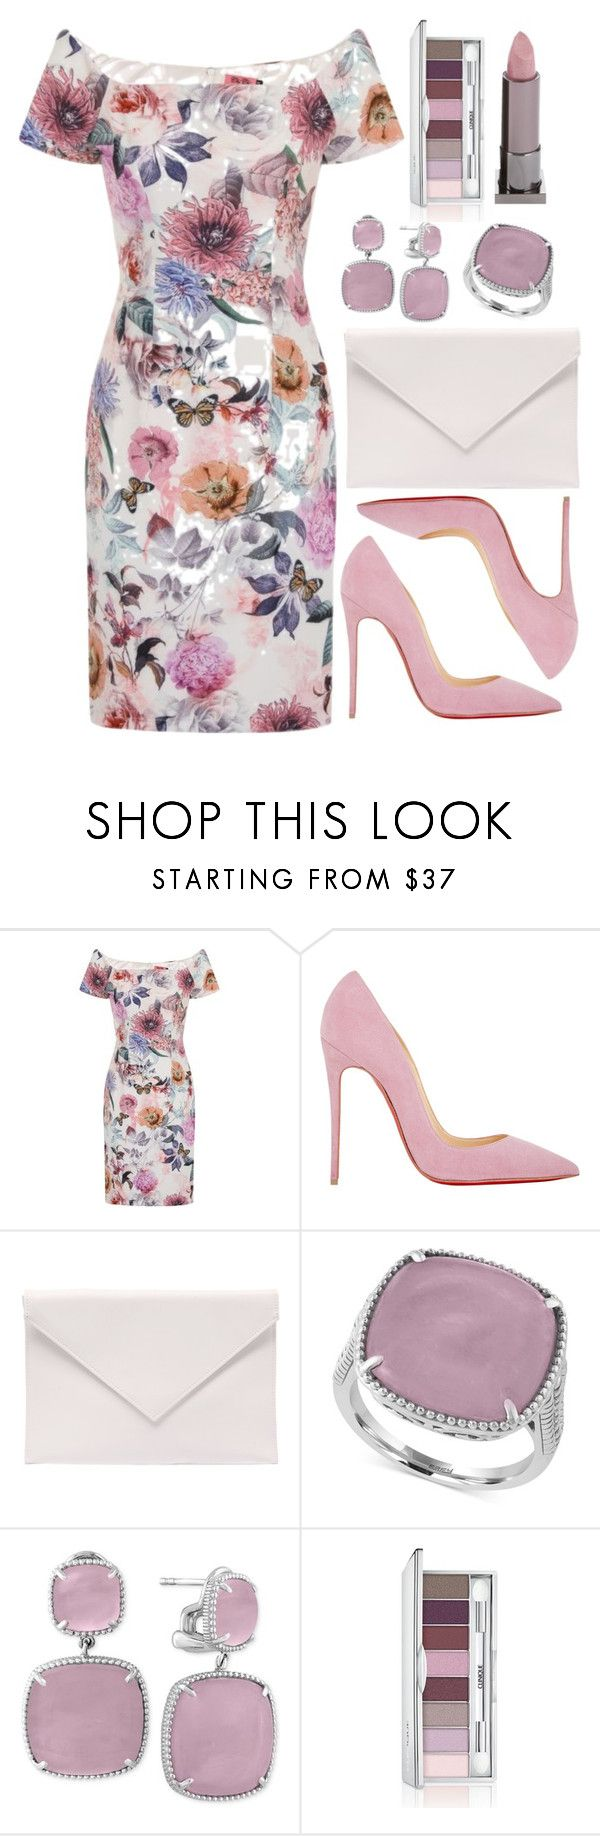 """""""Untitled #4394"""" by natalyasidunova ❤ liked on Polyvore featuring Chi Chi, Christian Louboutin, Verali, Effy Jewelry, Clinique and Lipstick Queen"""